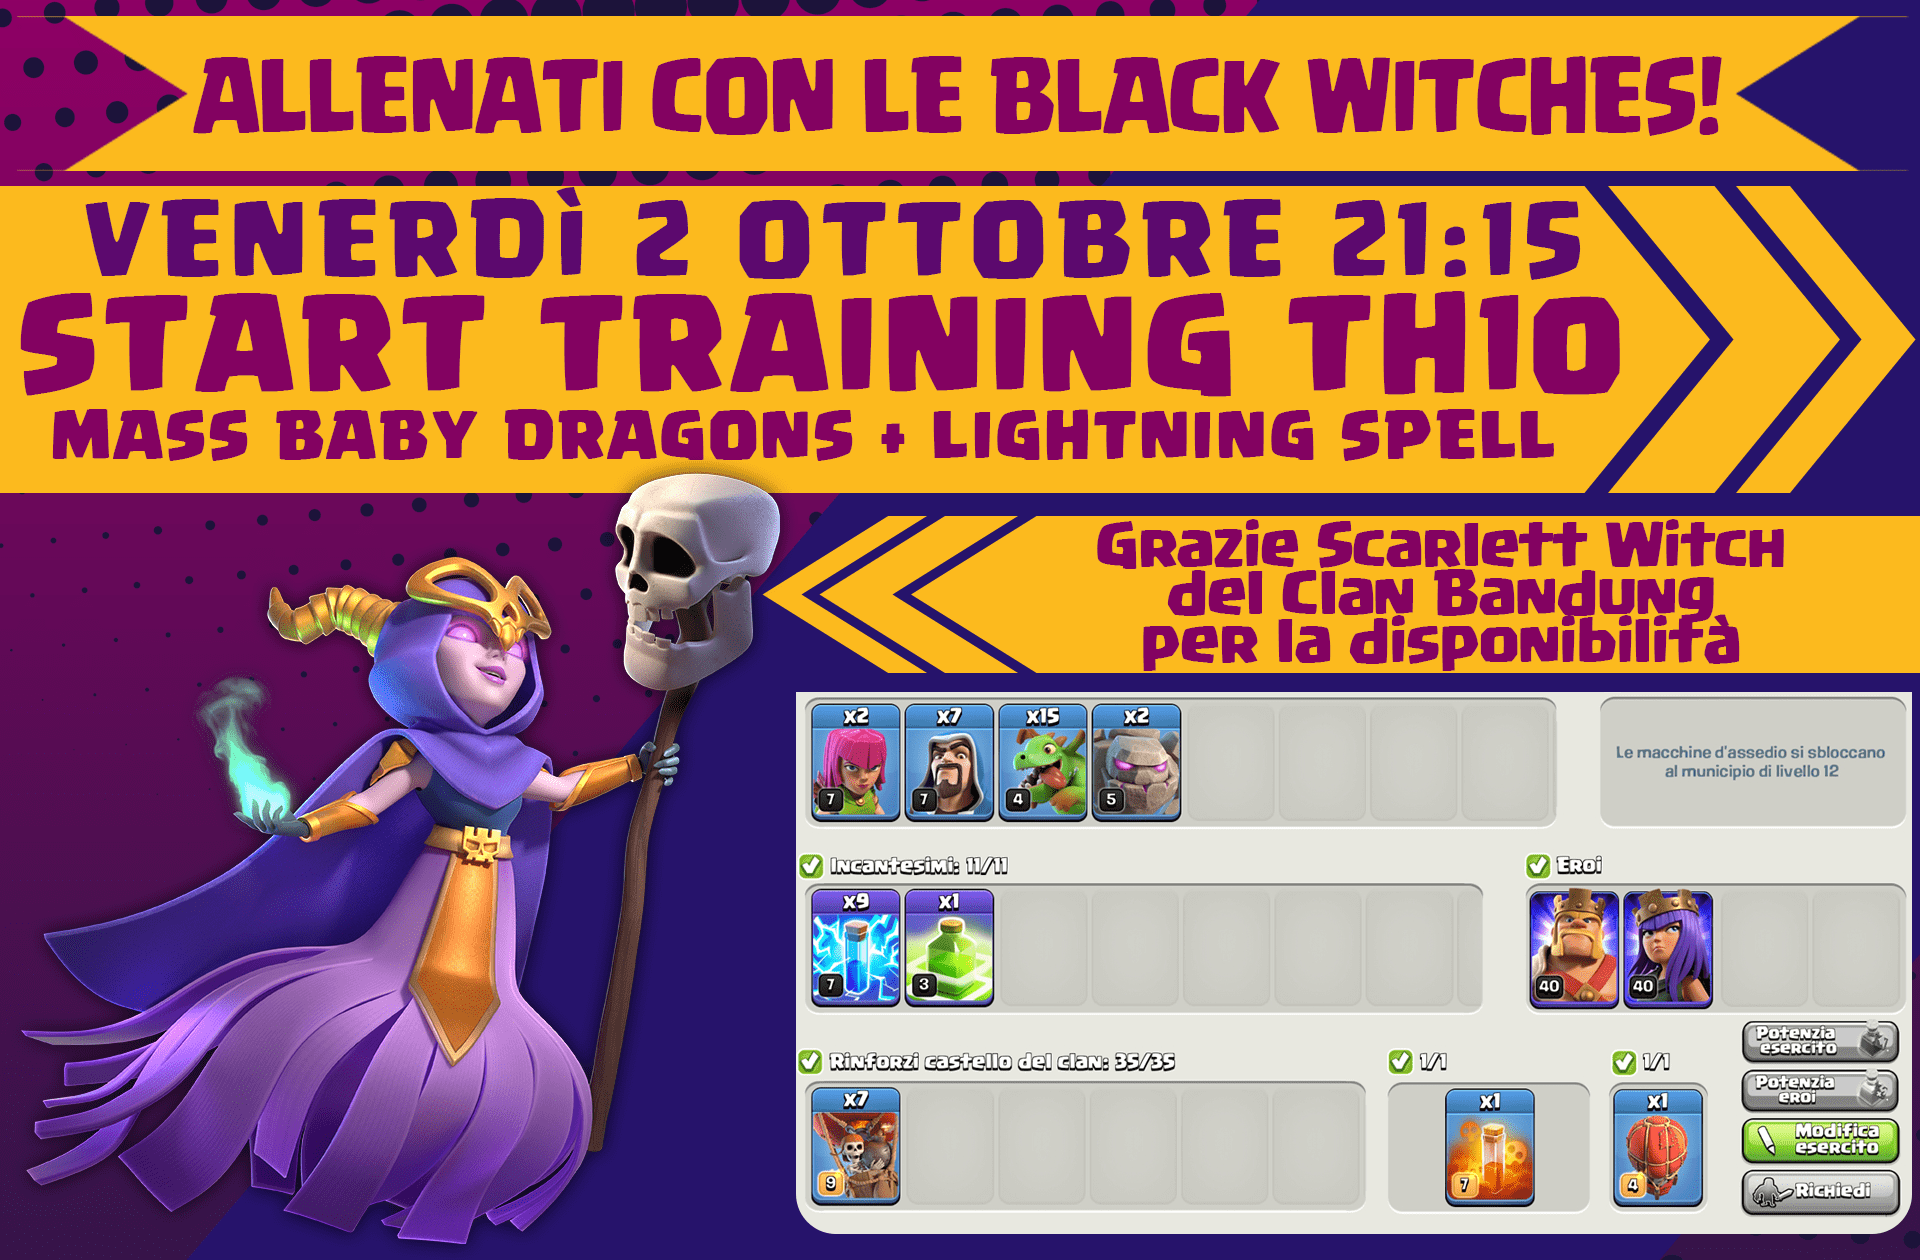 Training con le Black Witches, mass babydragons + lightning spell per TH10